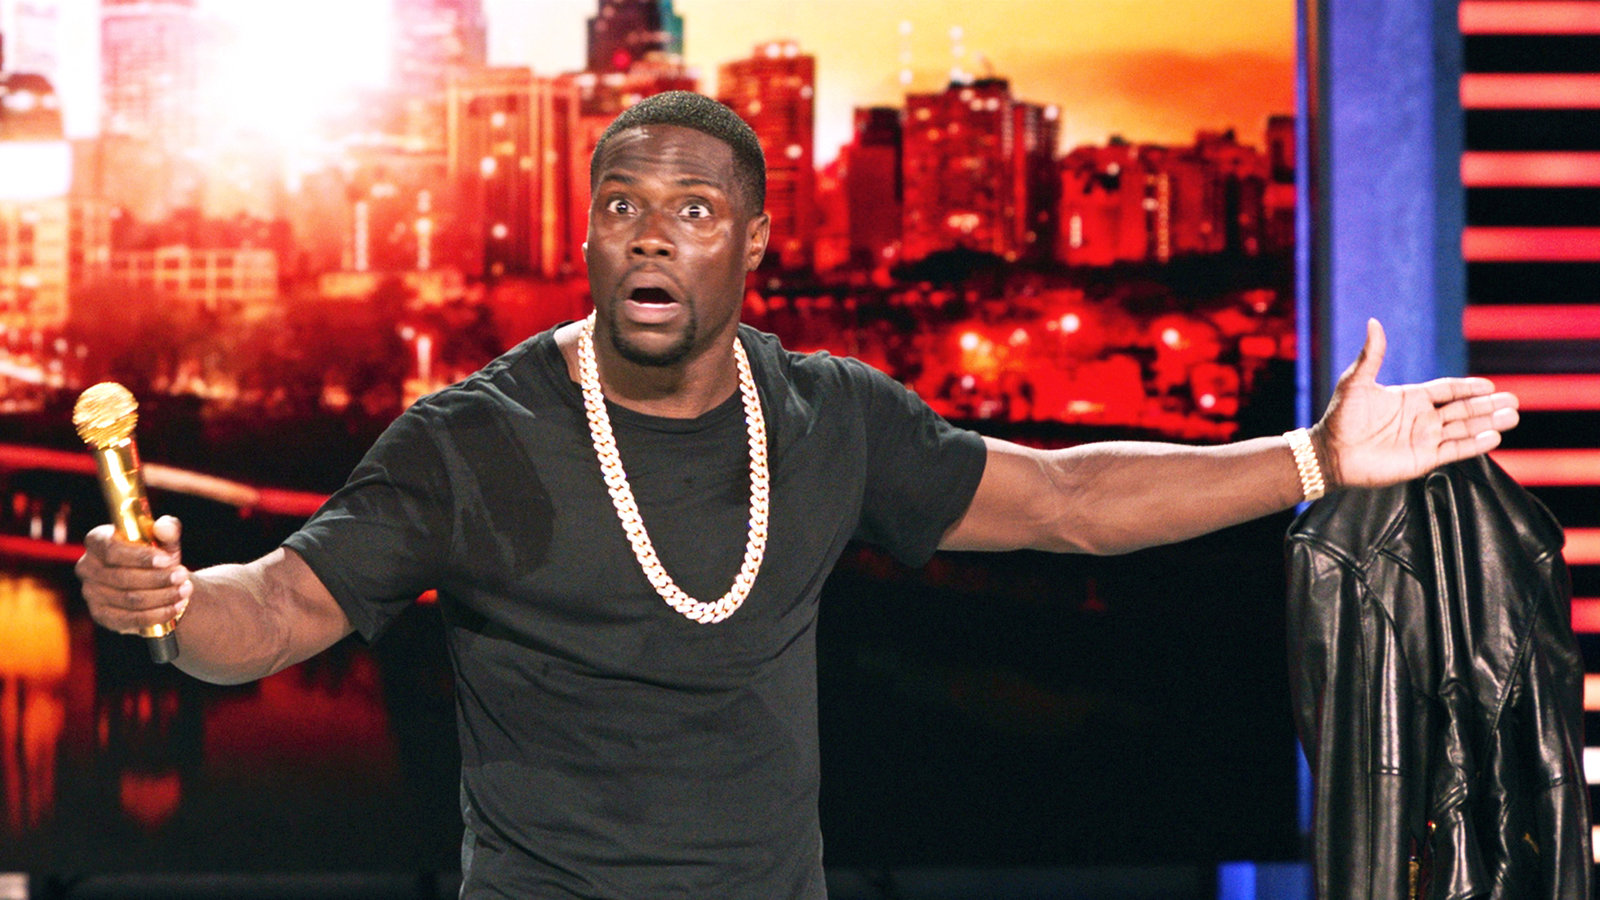 Watch Kevin Hart Tell A Joke See Fans Laugh At The